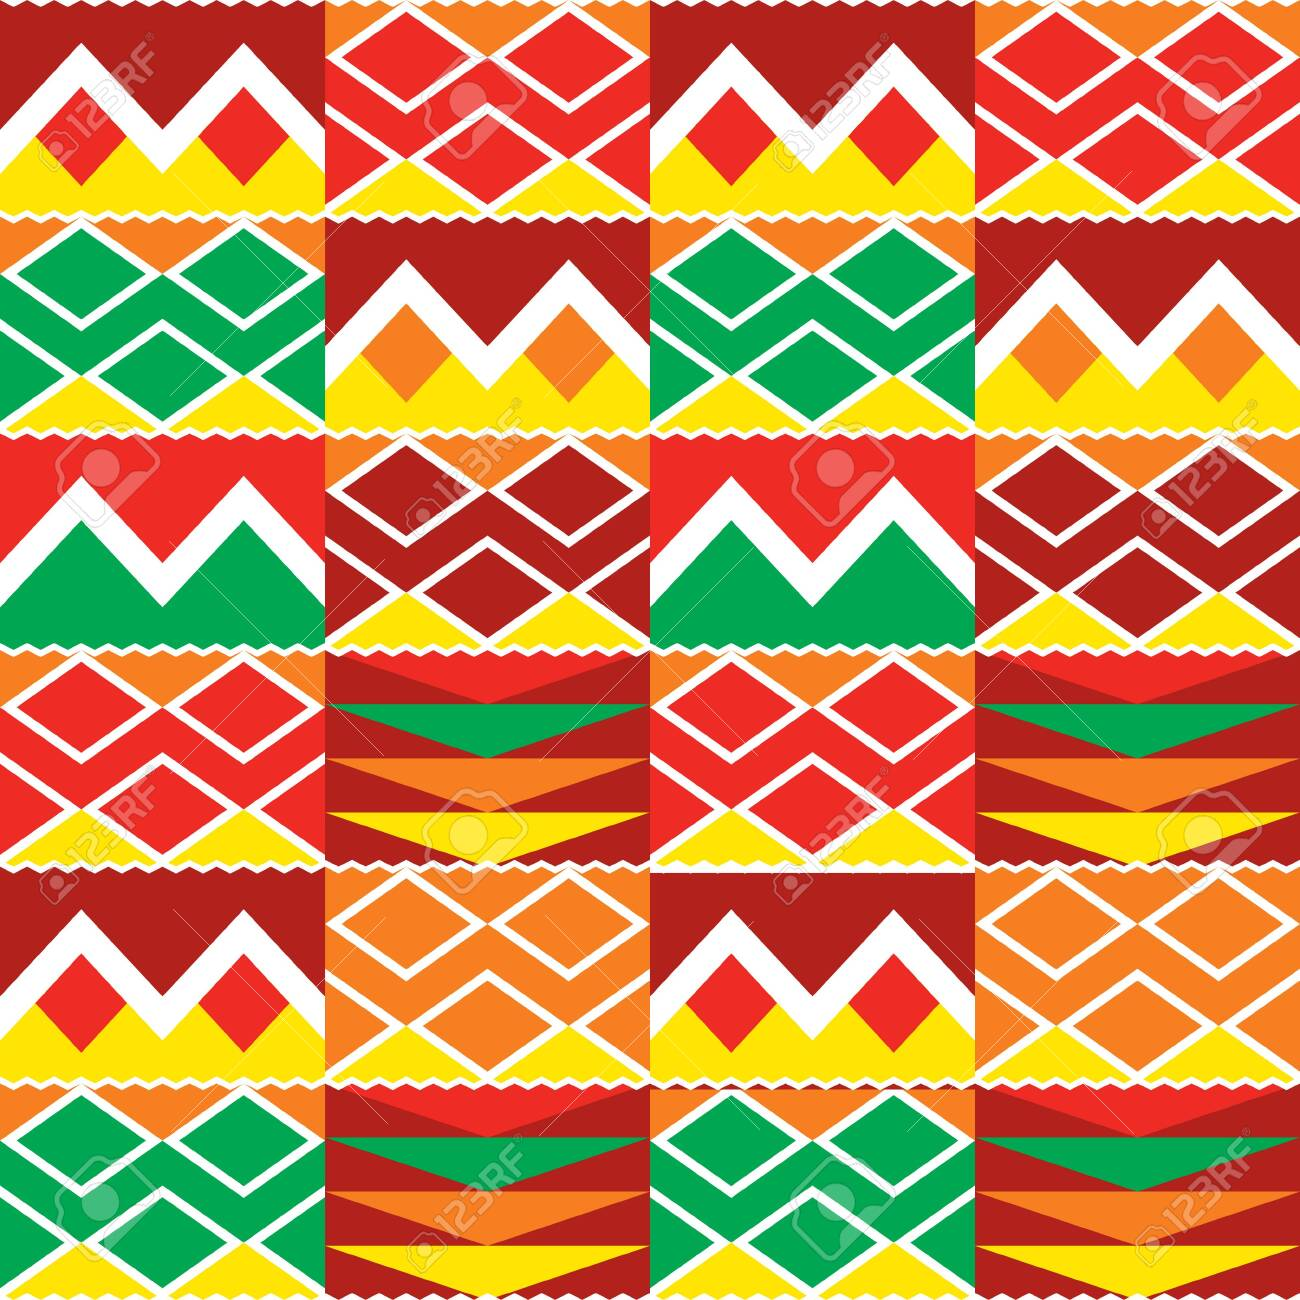 Tribal geometric seamless pattern, African Kente nwentoma cloth style vector textile design - 149856679